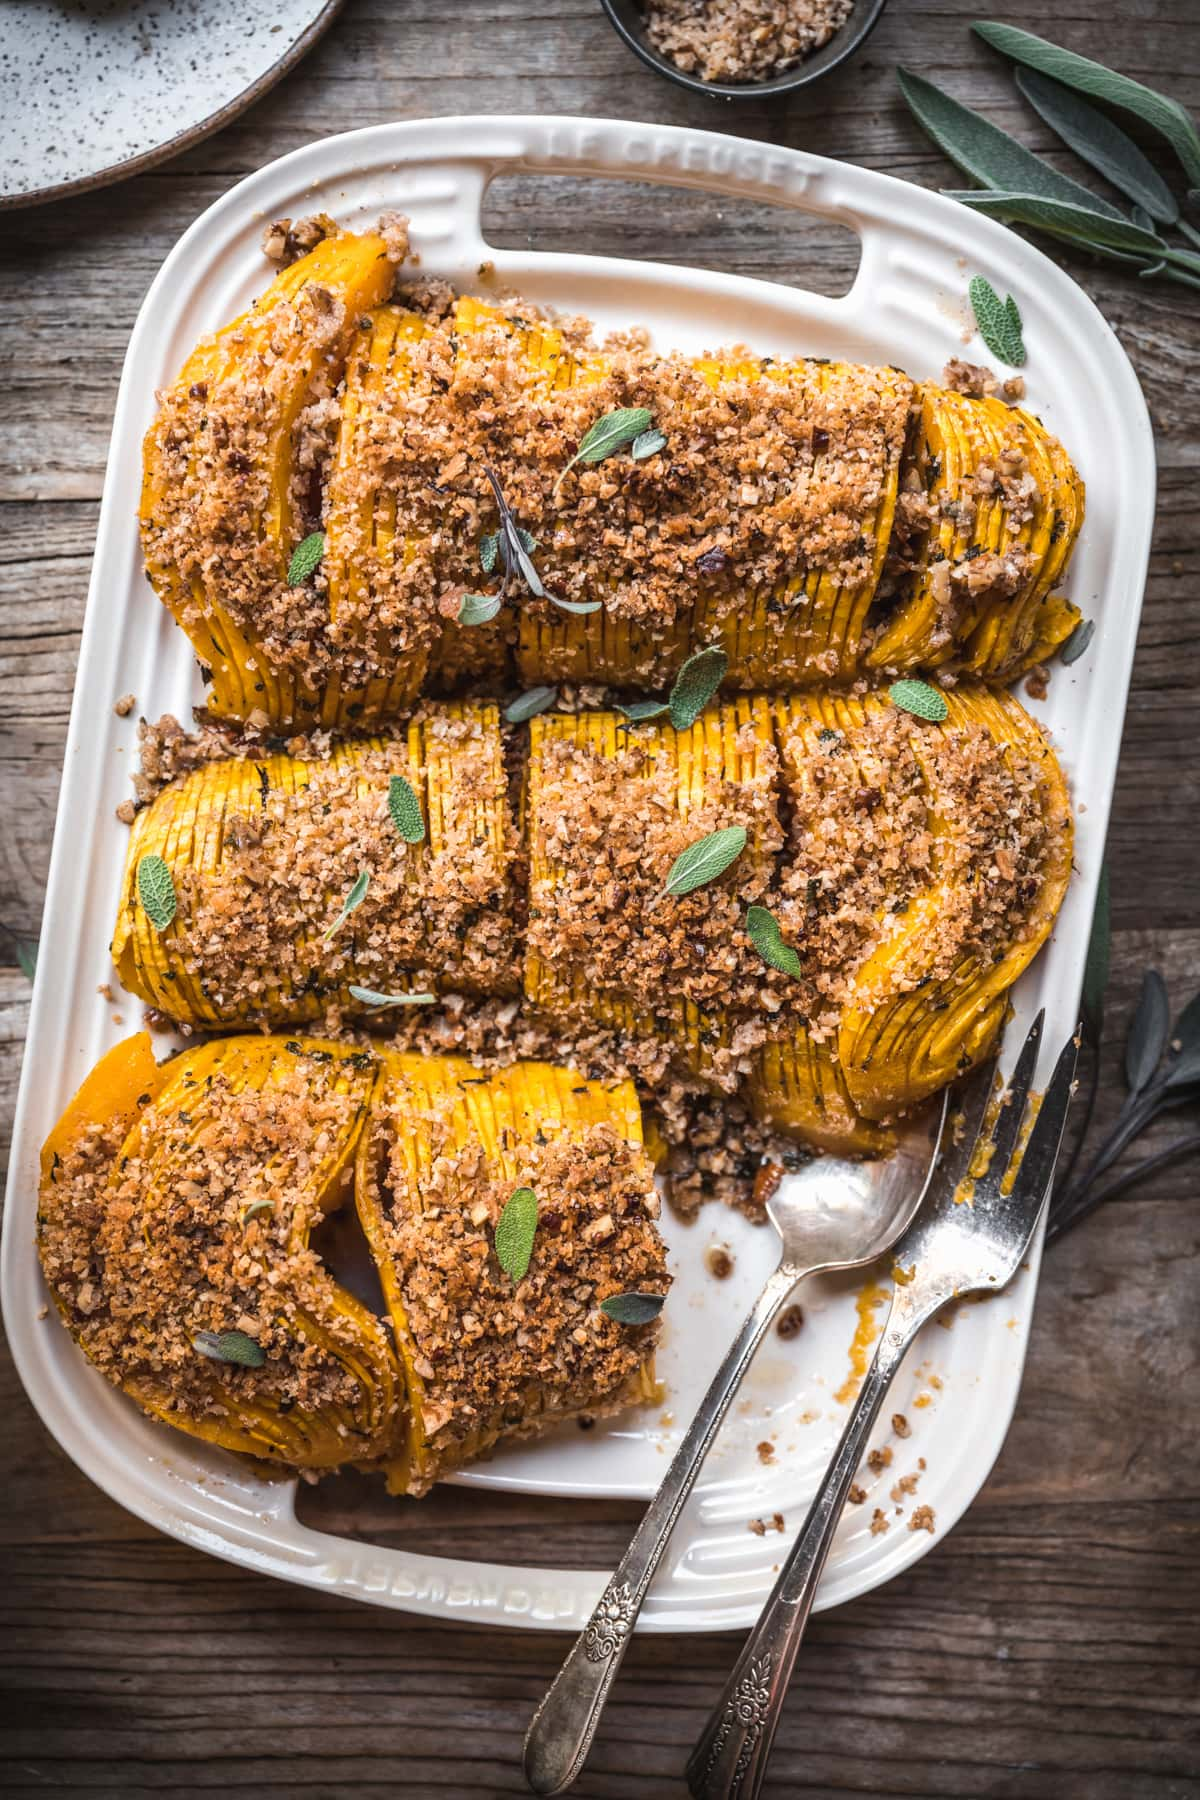 overhead view of hasselback butternut squash with breadcrumbs on a white platter with serving utensils.